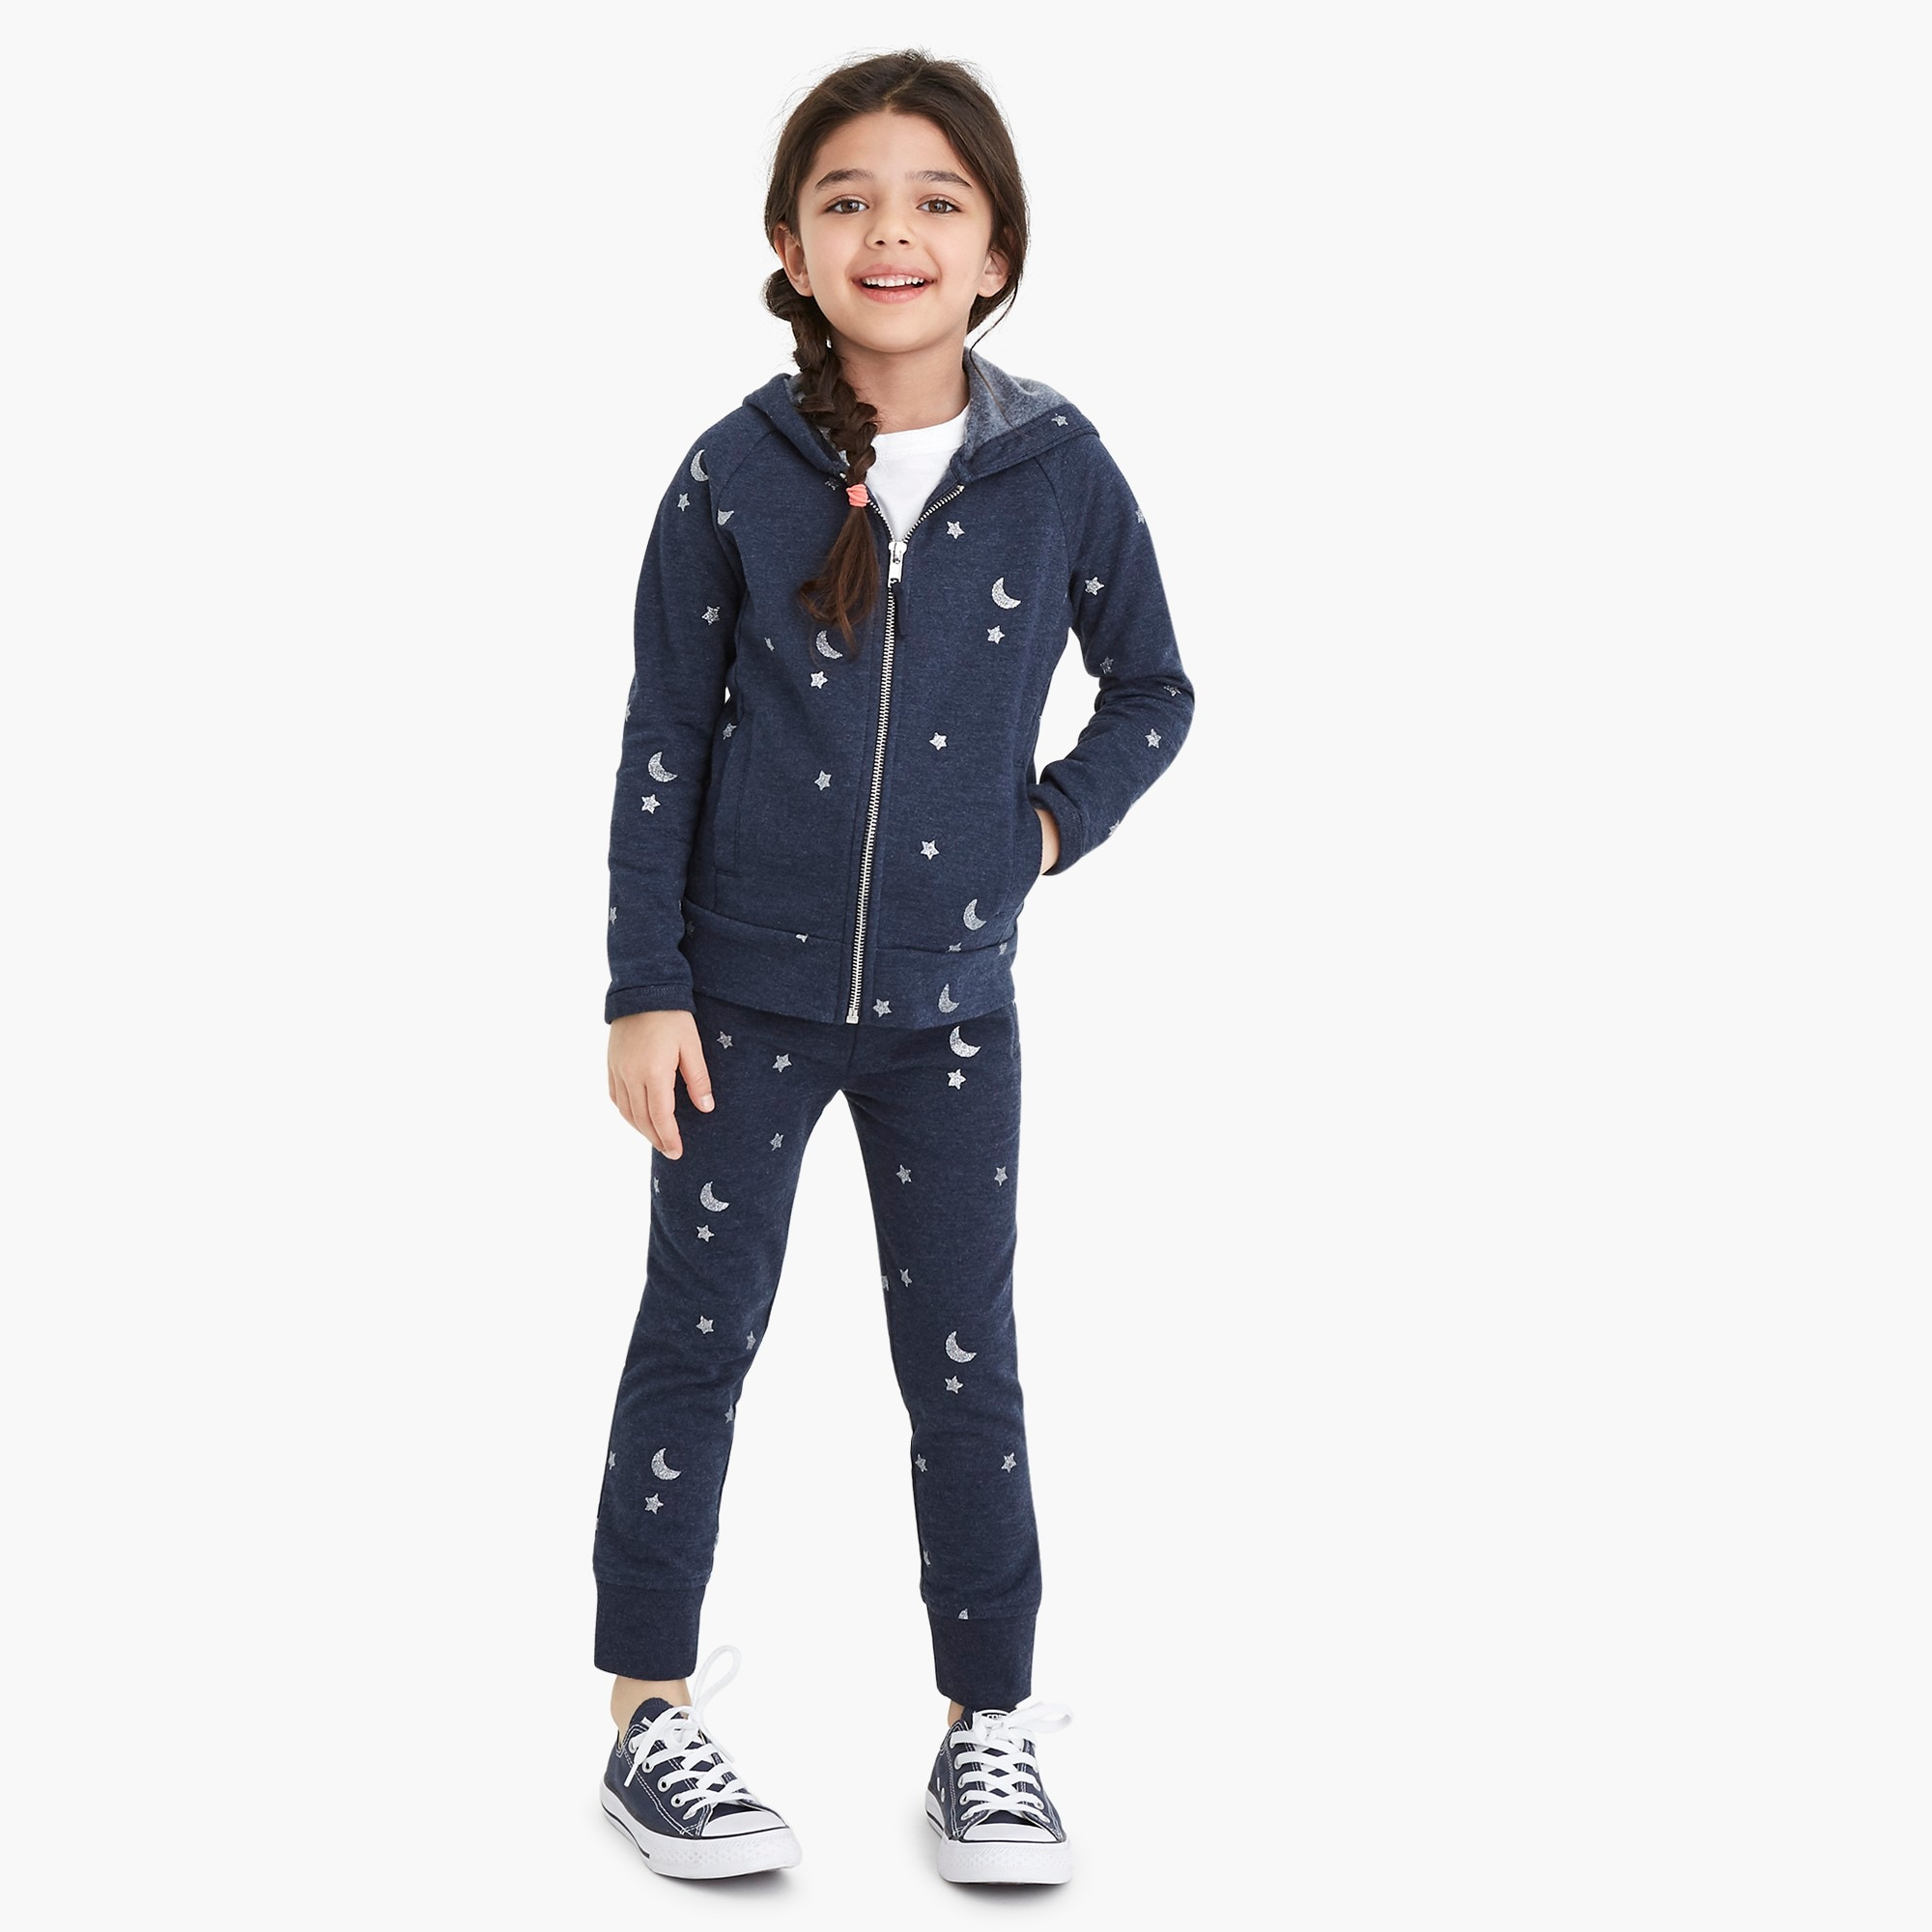 factory girls Girls' sweatpants in star and moon print